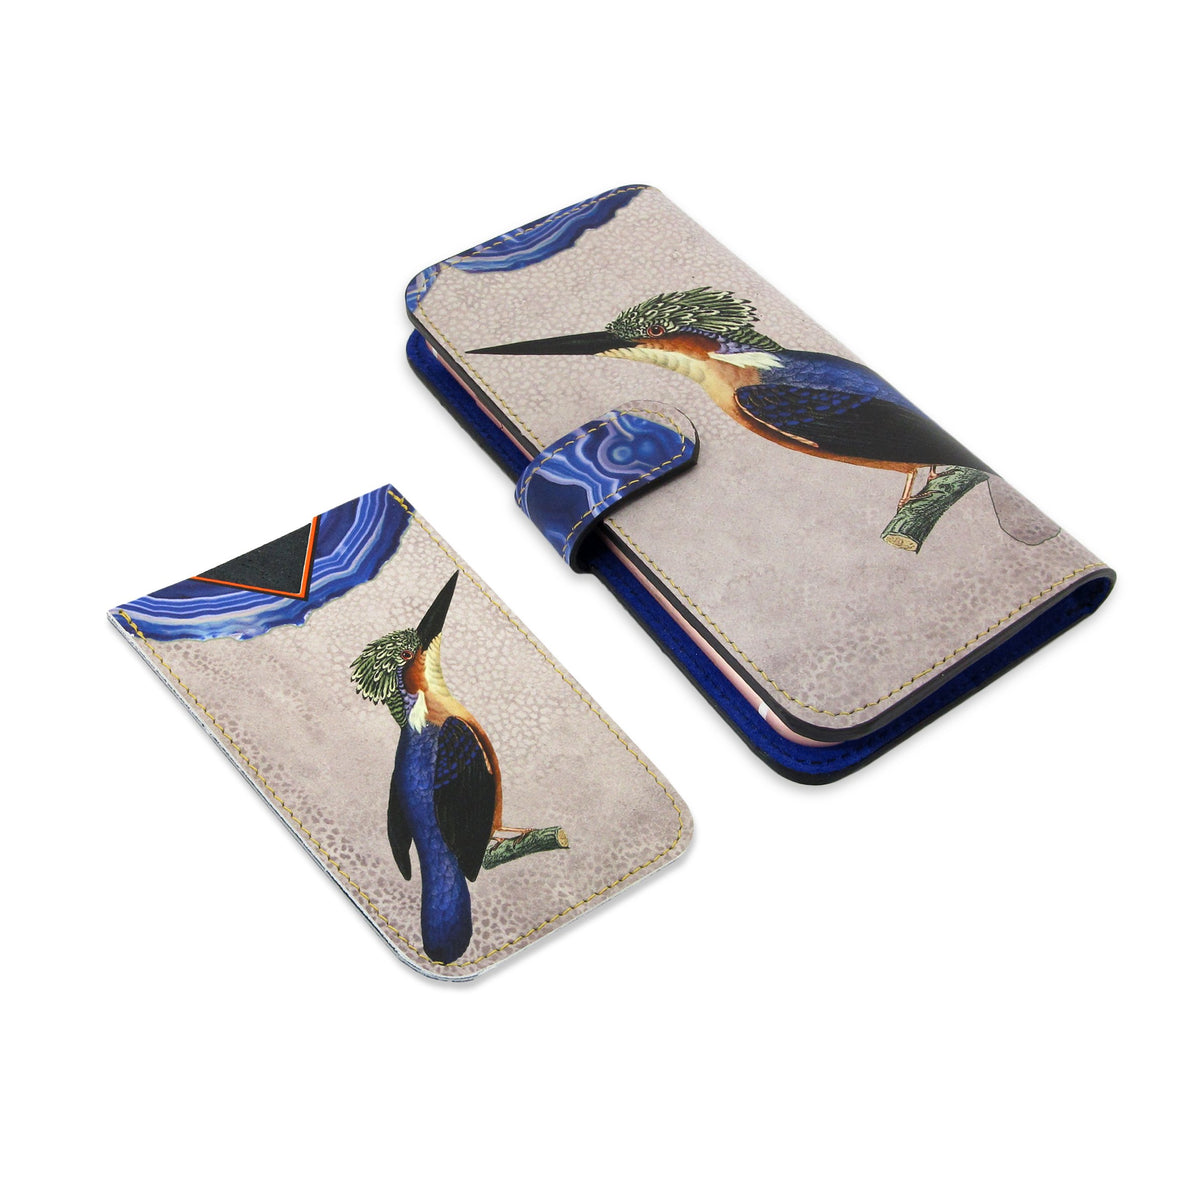 Leather Card Holder / Phone Sticker Wallet Pocket - Kingfisher Wallet Tovi Sorga